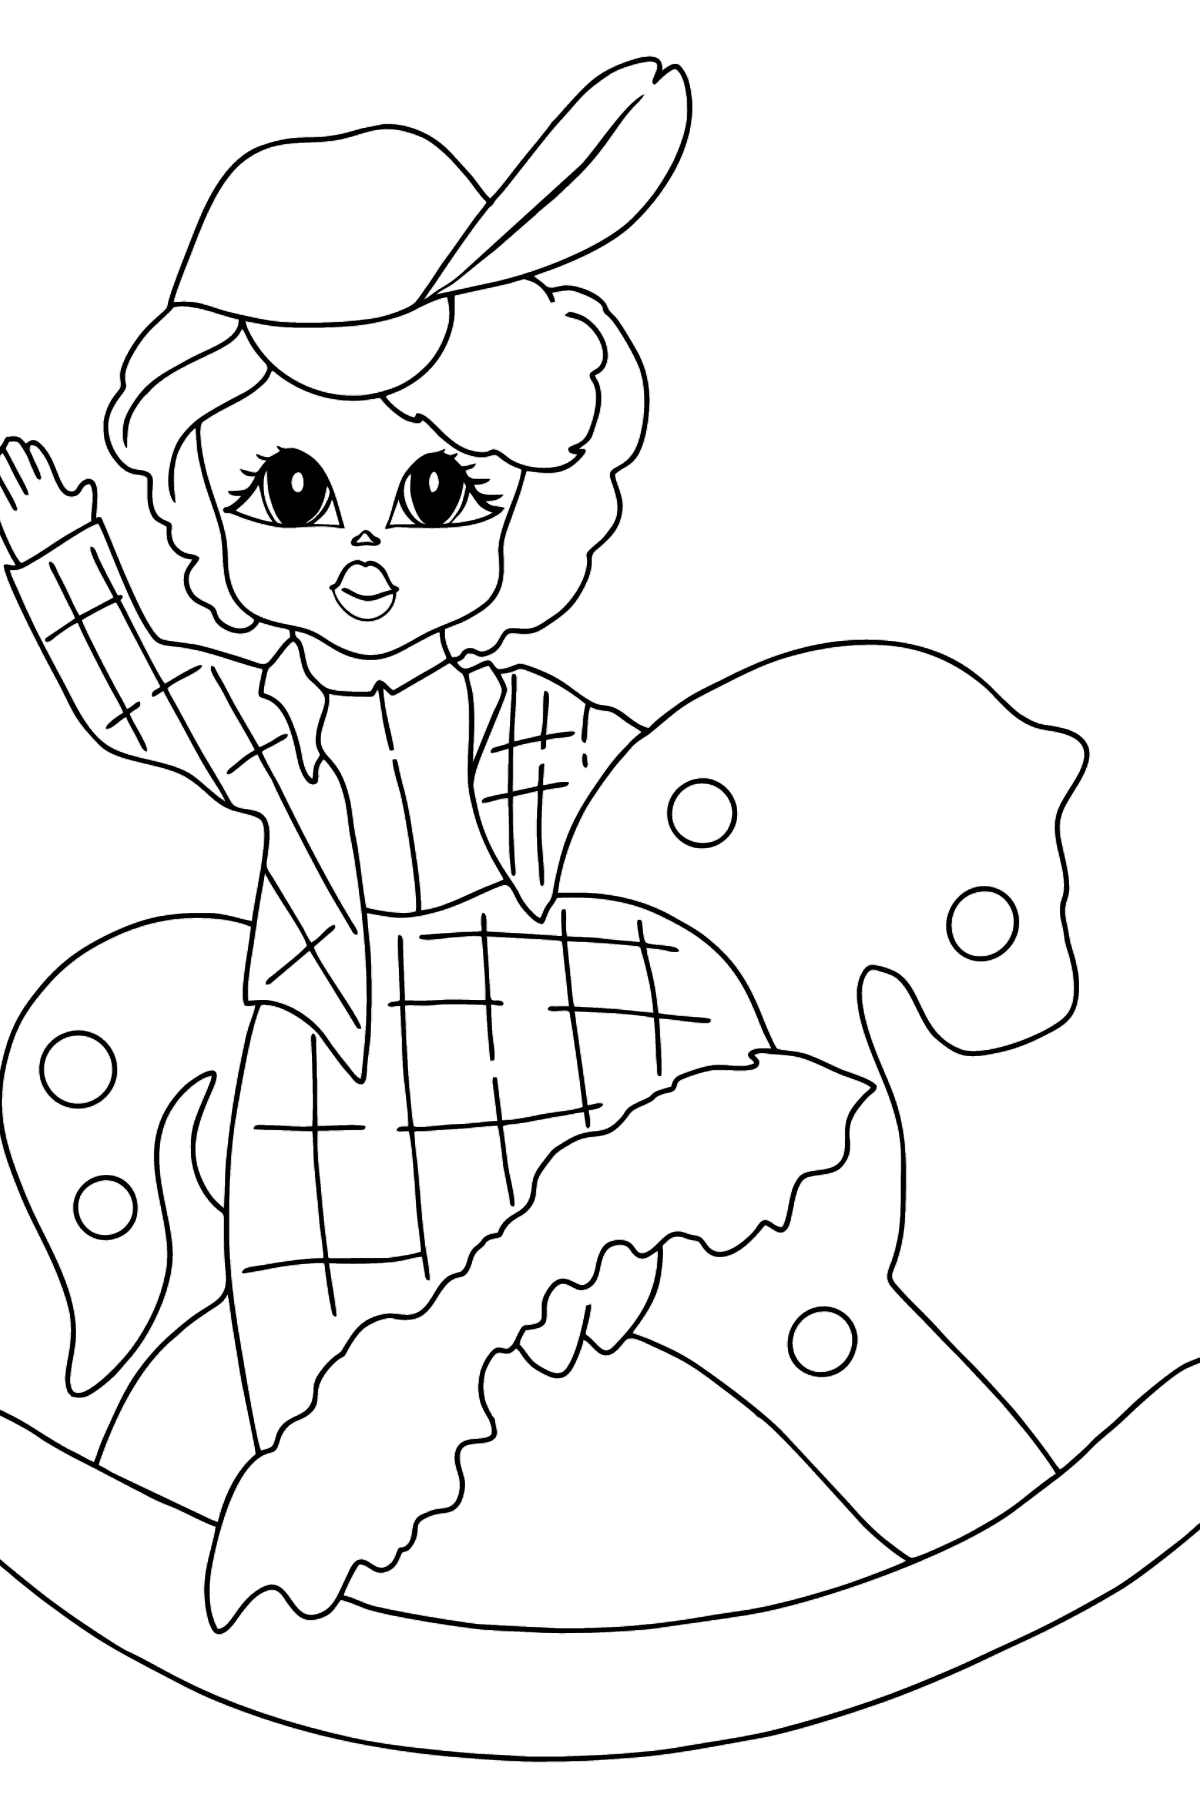 Coloring Page - A Princess on a Horse - Coloring Pages for Kids